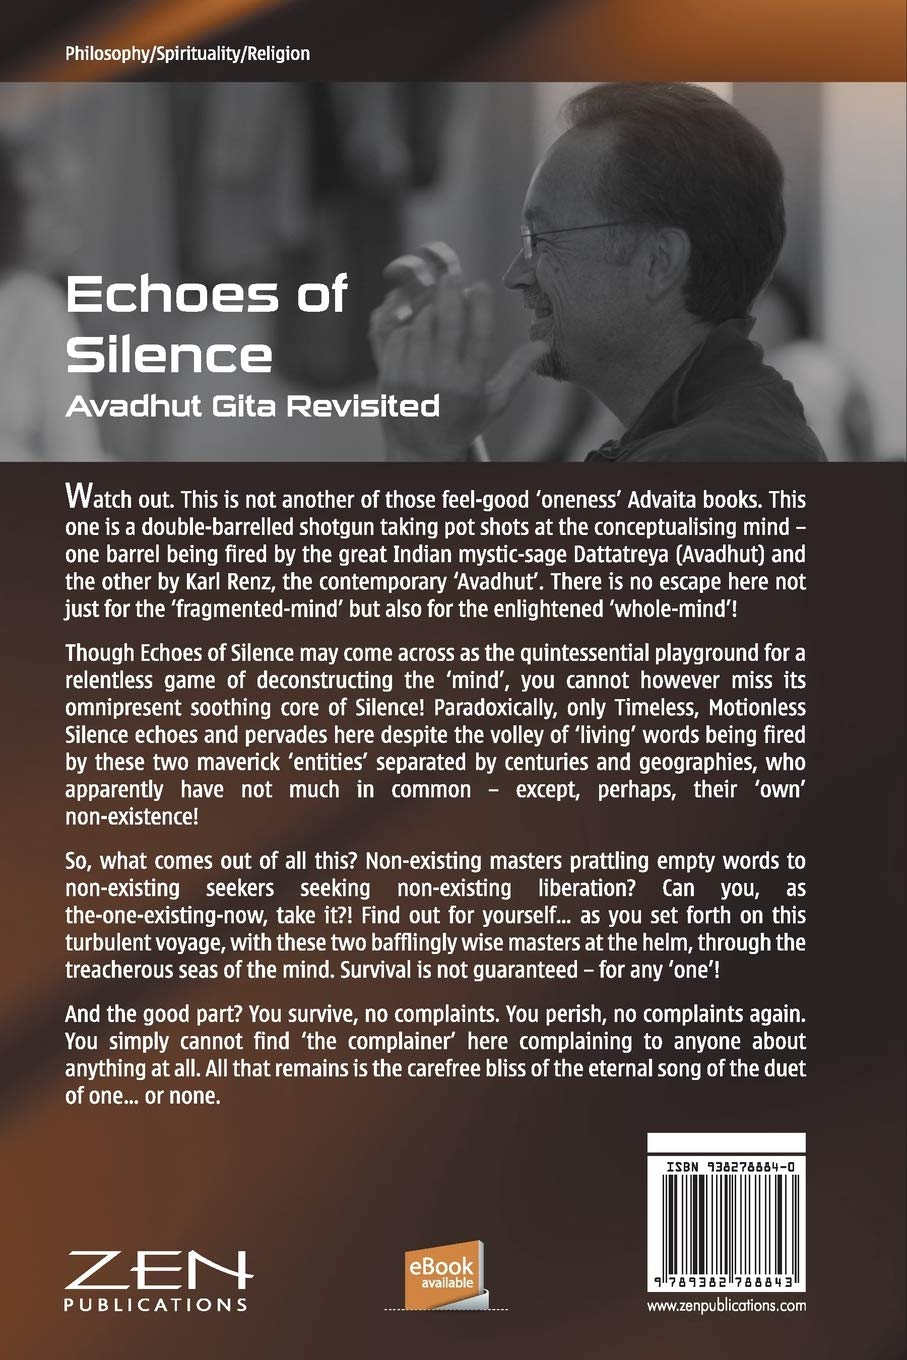 Echoes of Silence: Avadhut Gita Revisited